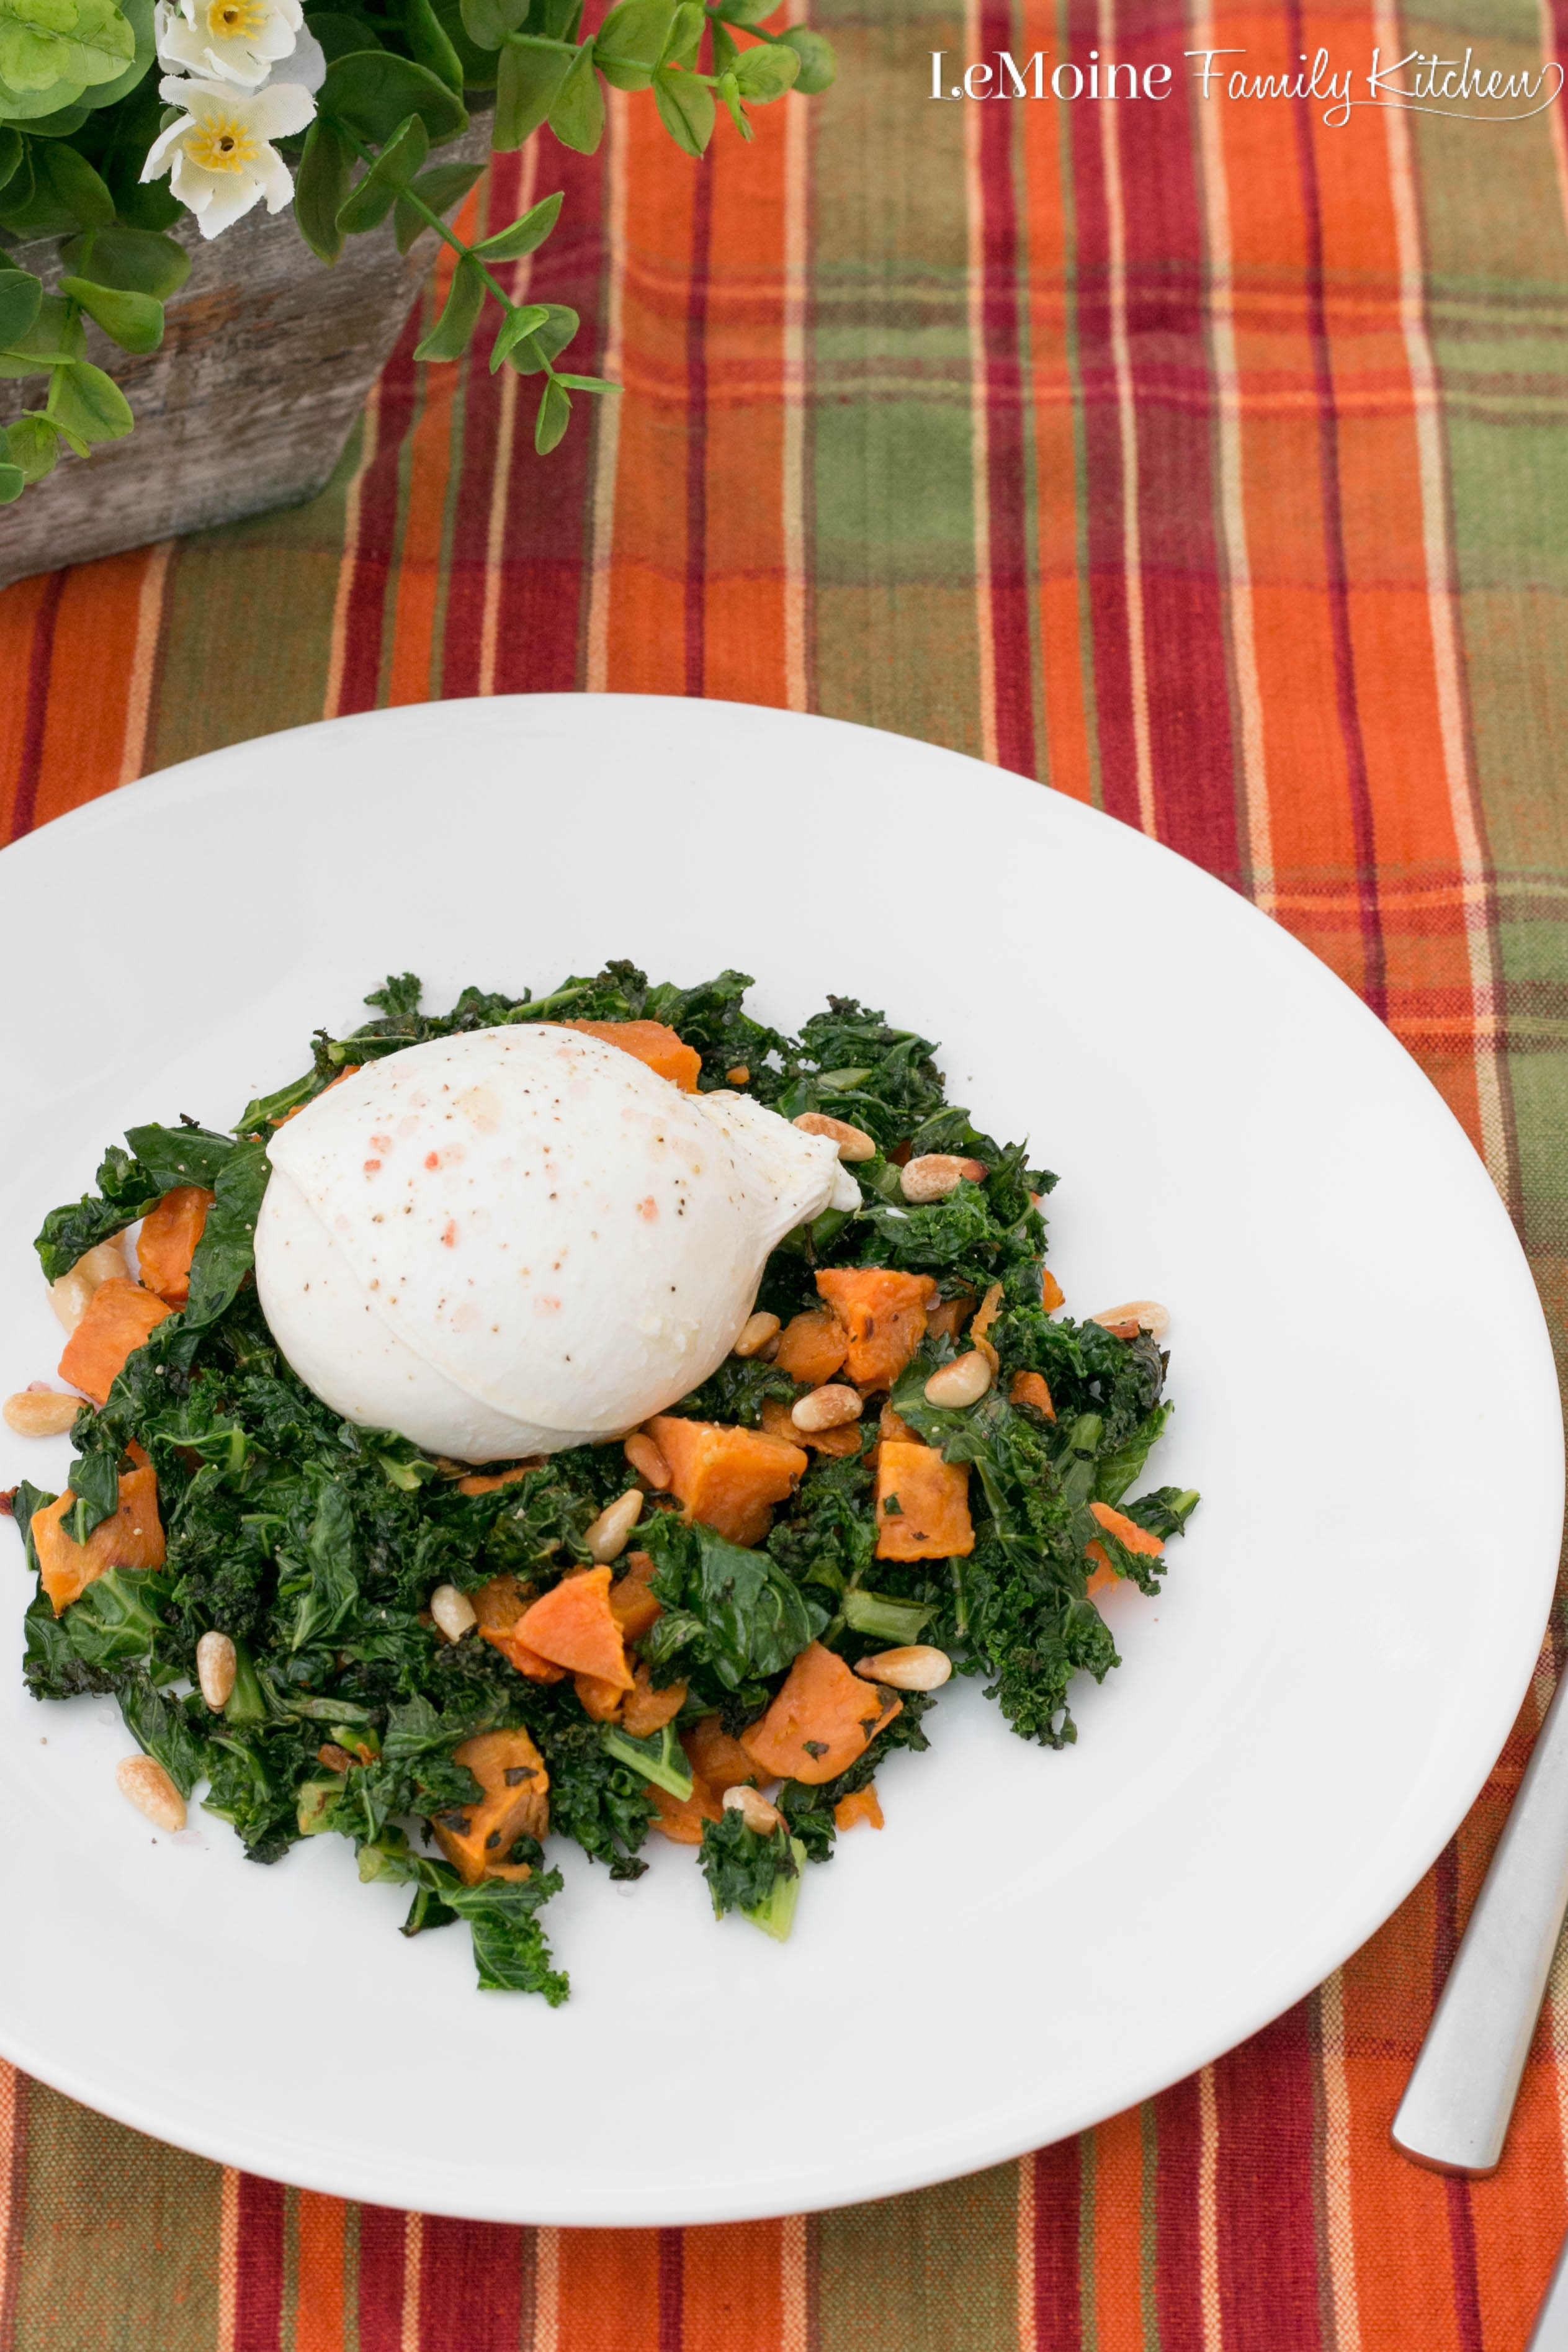 Roasted Butternut Squash, Kale and Burrata. Fall inspired meal with simple ingredients and big flavor. This makes for a great fast weeknight meal or as part of your holiday menu.